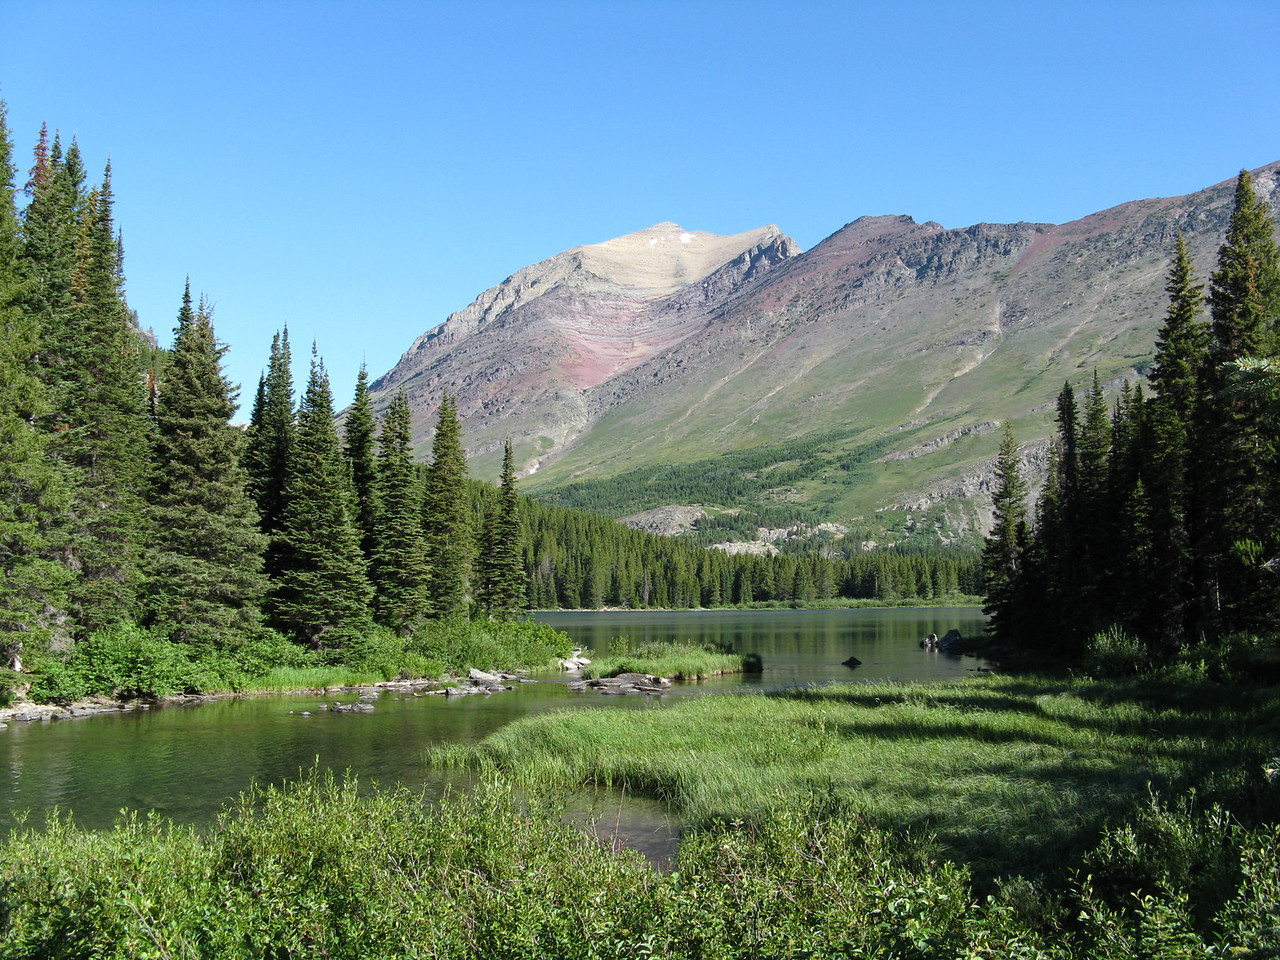 Grinnell Creek in the foreground at the upper end of Swiftcurrent Lake.